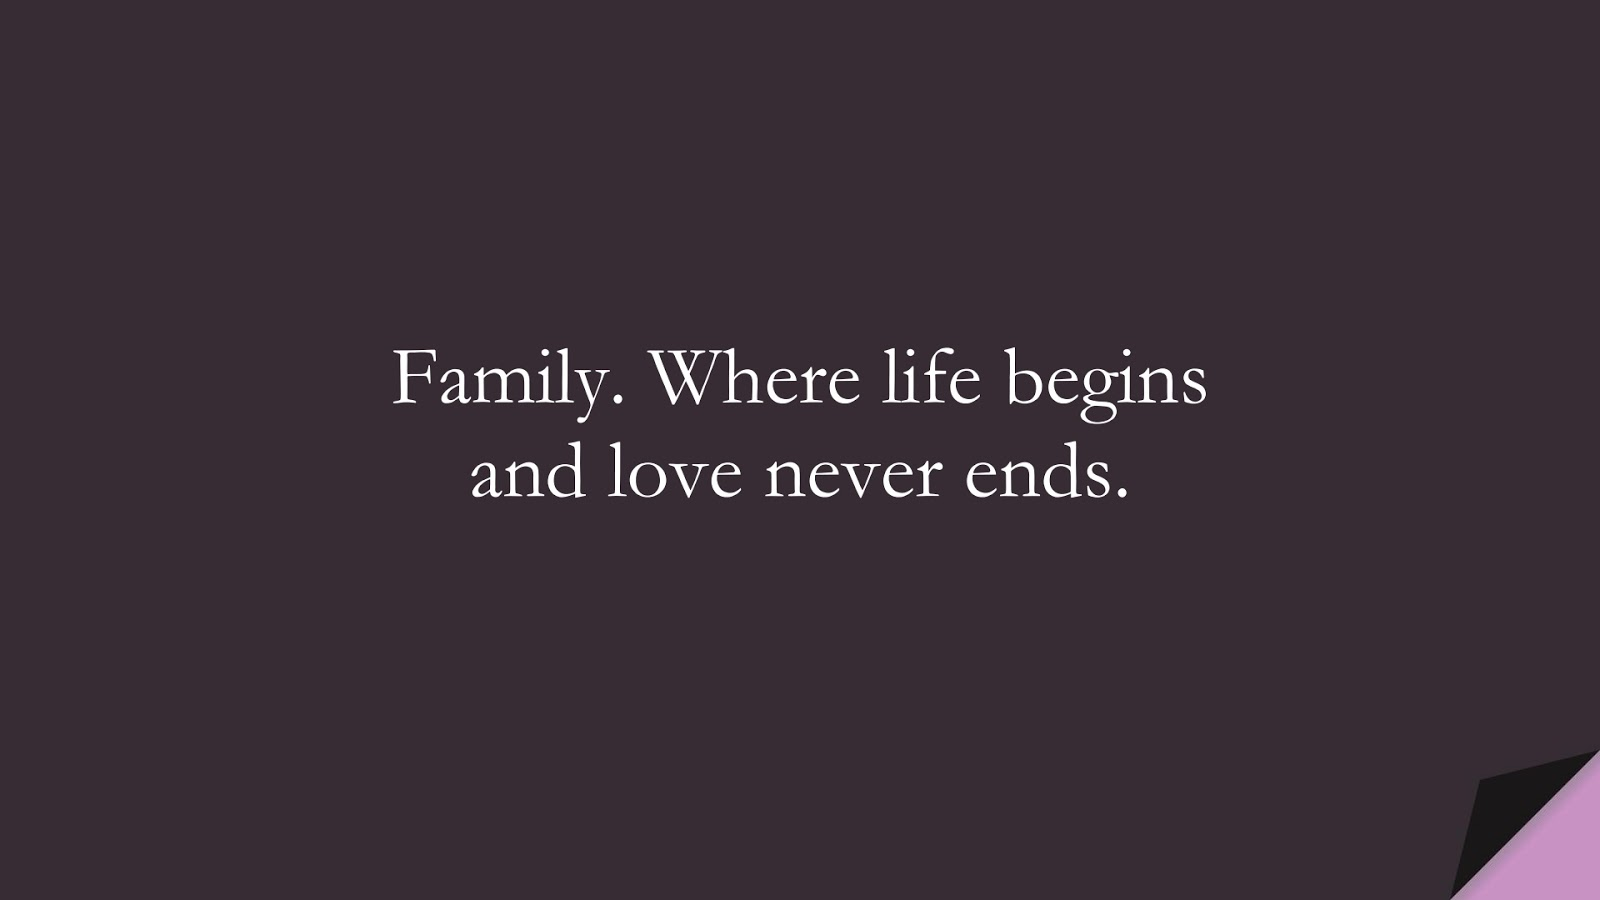 Family. Where life begins and love never ends.FALSE